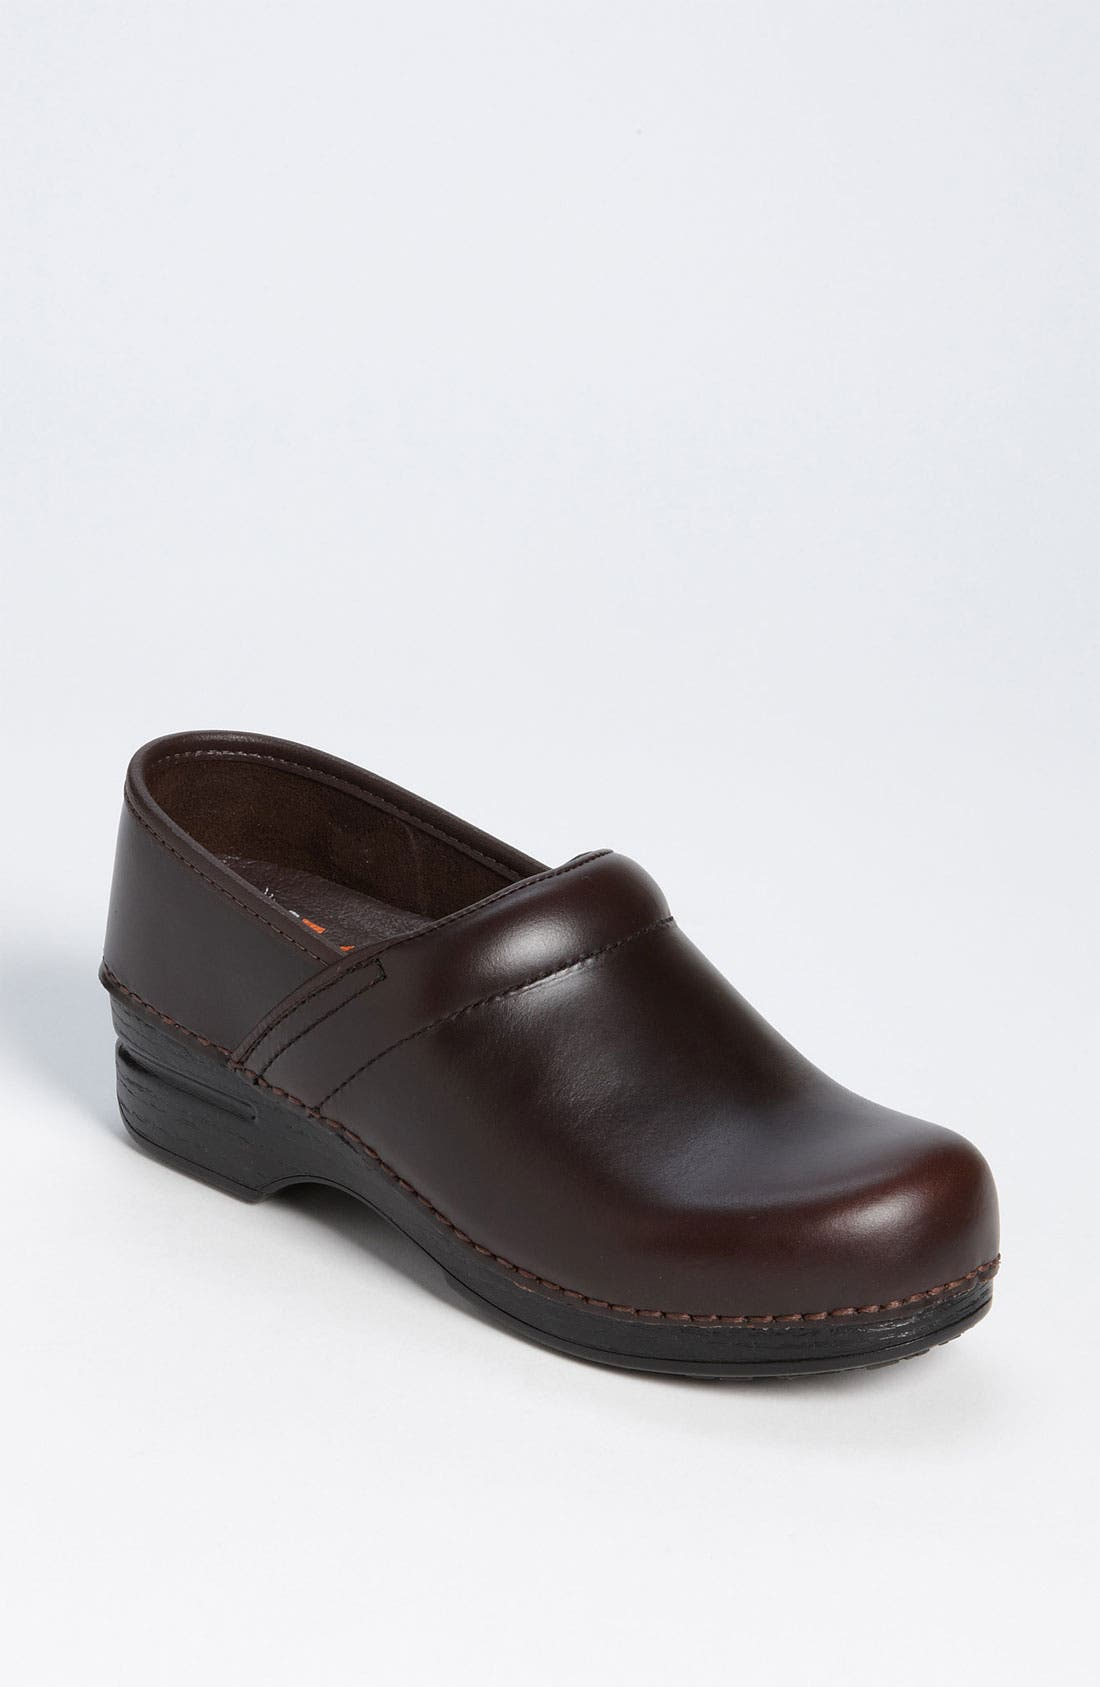 Alternate Image 1 Selected - Dansko 'Professional XP' Clog